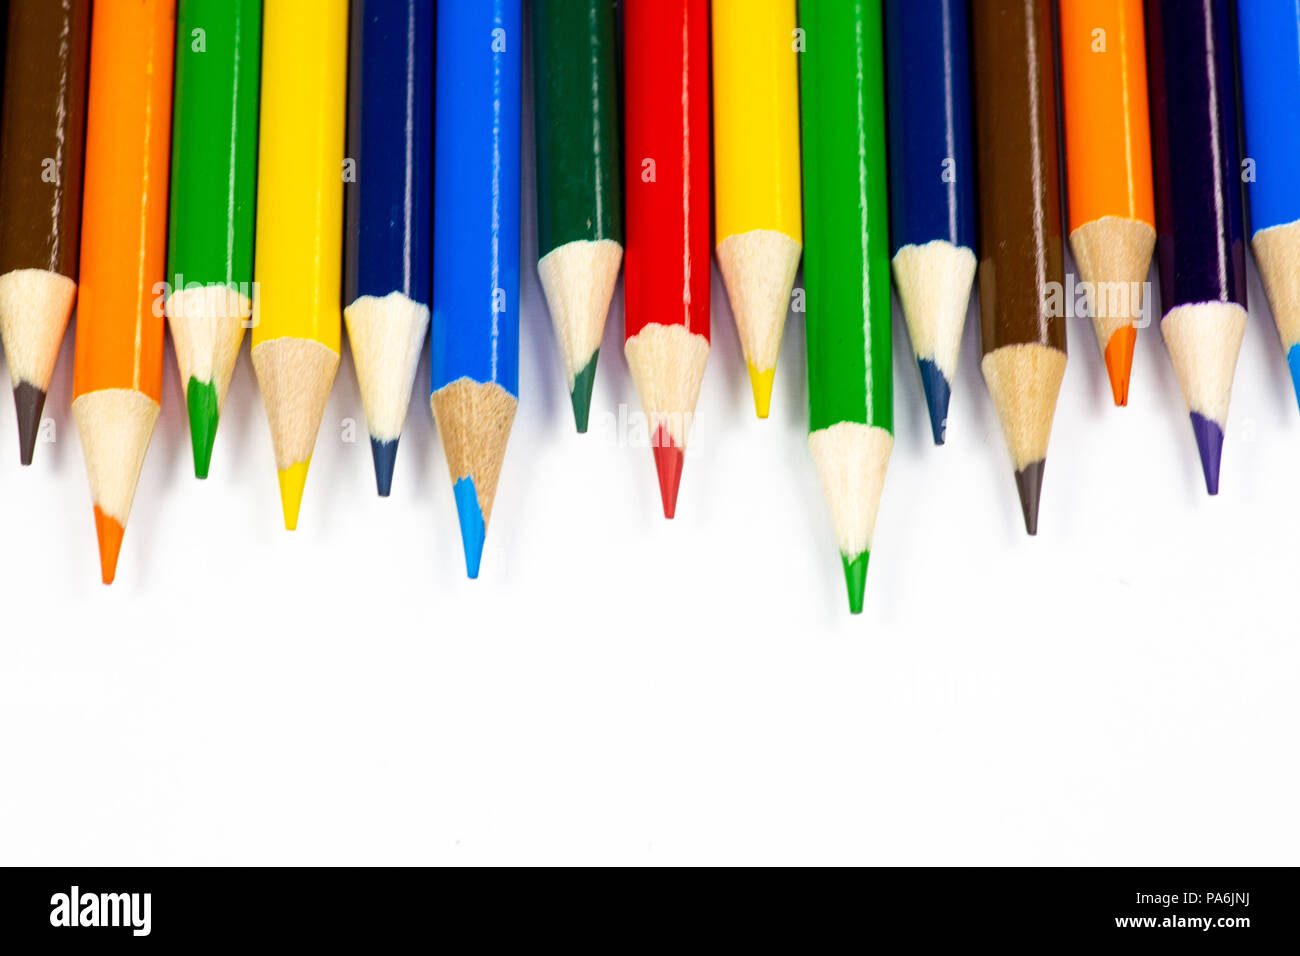 Coloring Pencils Stock Photos Amp Coloring Pencils Stock